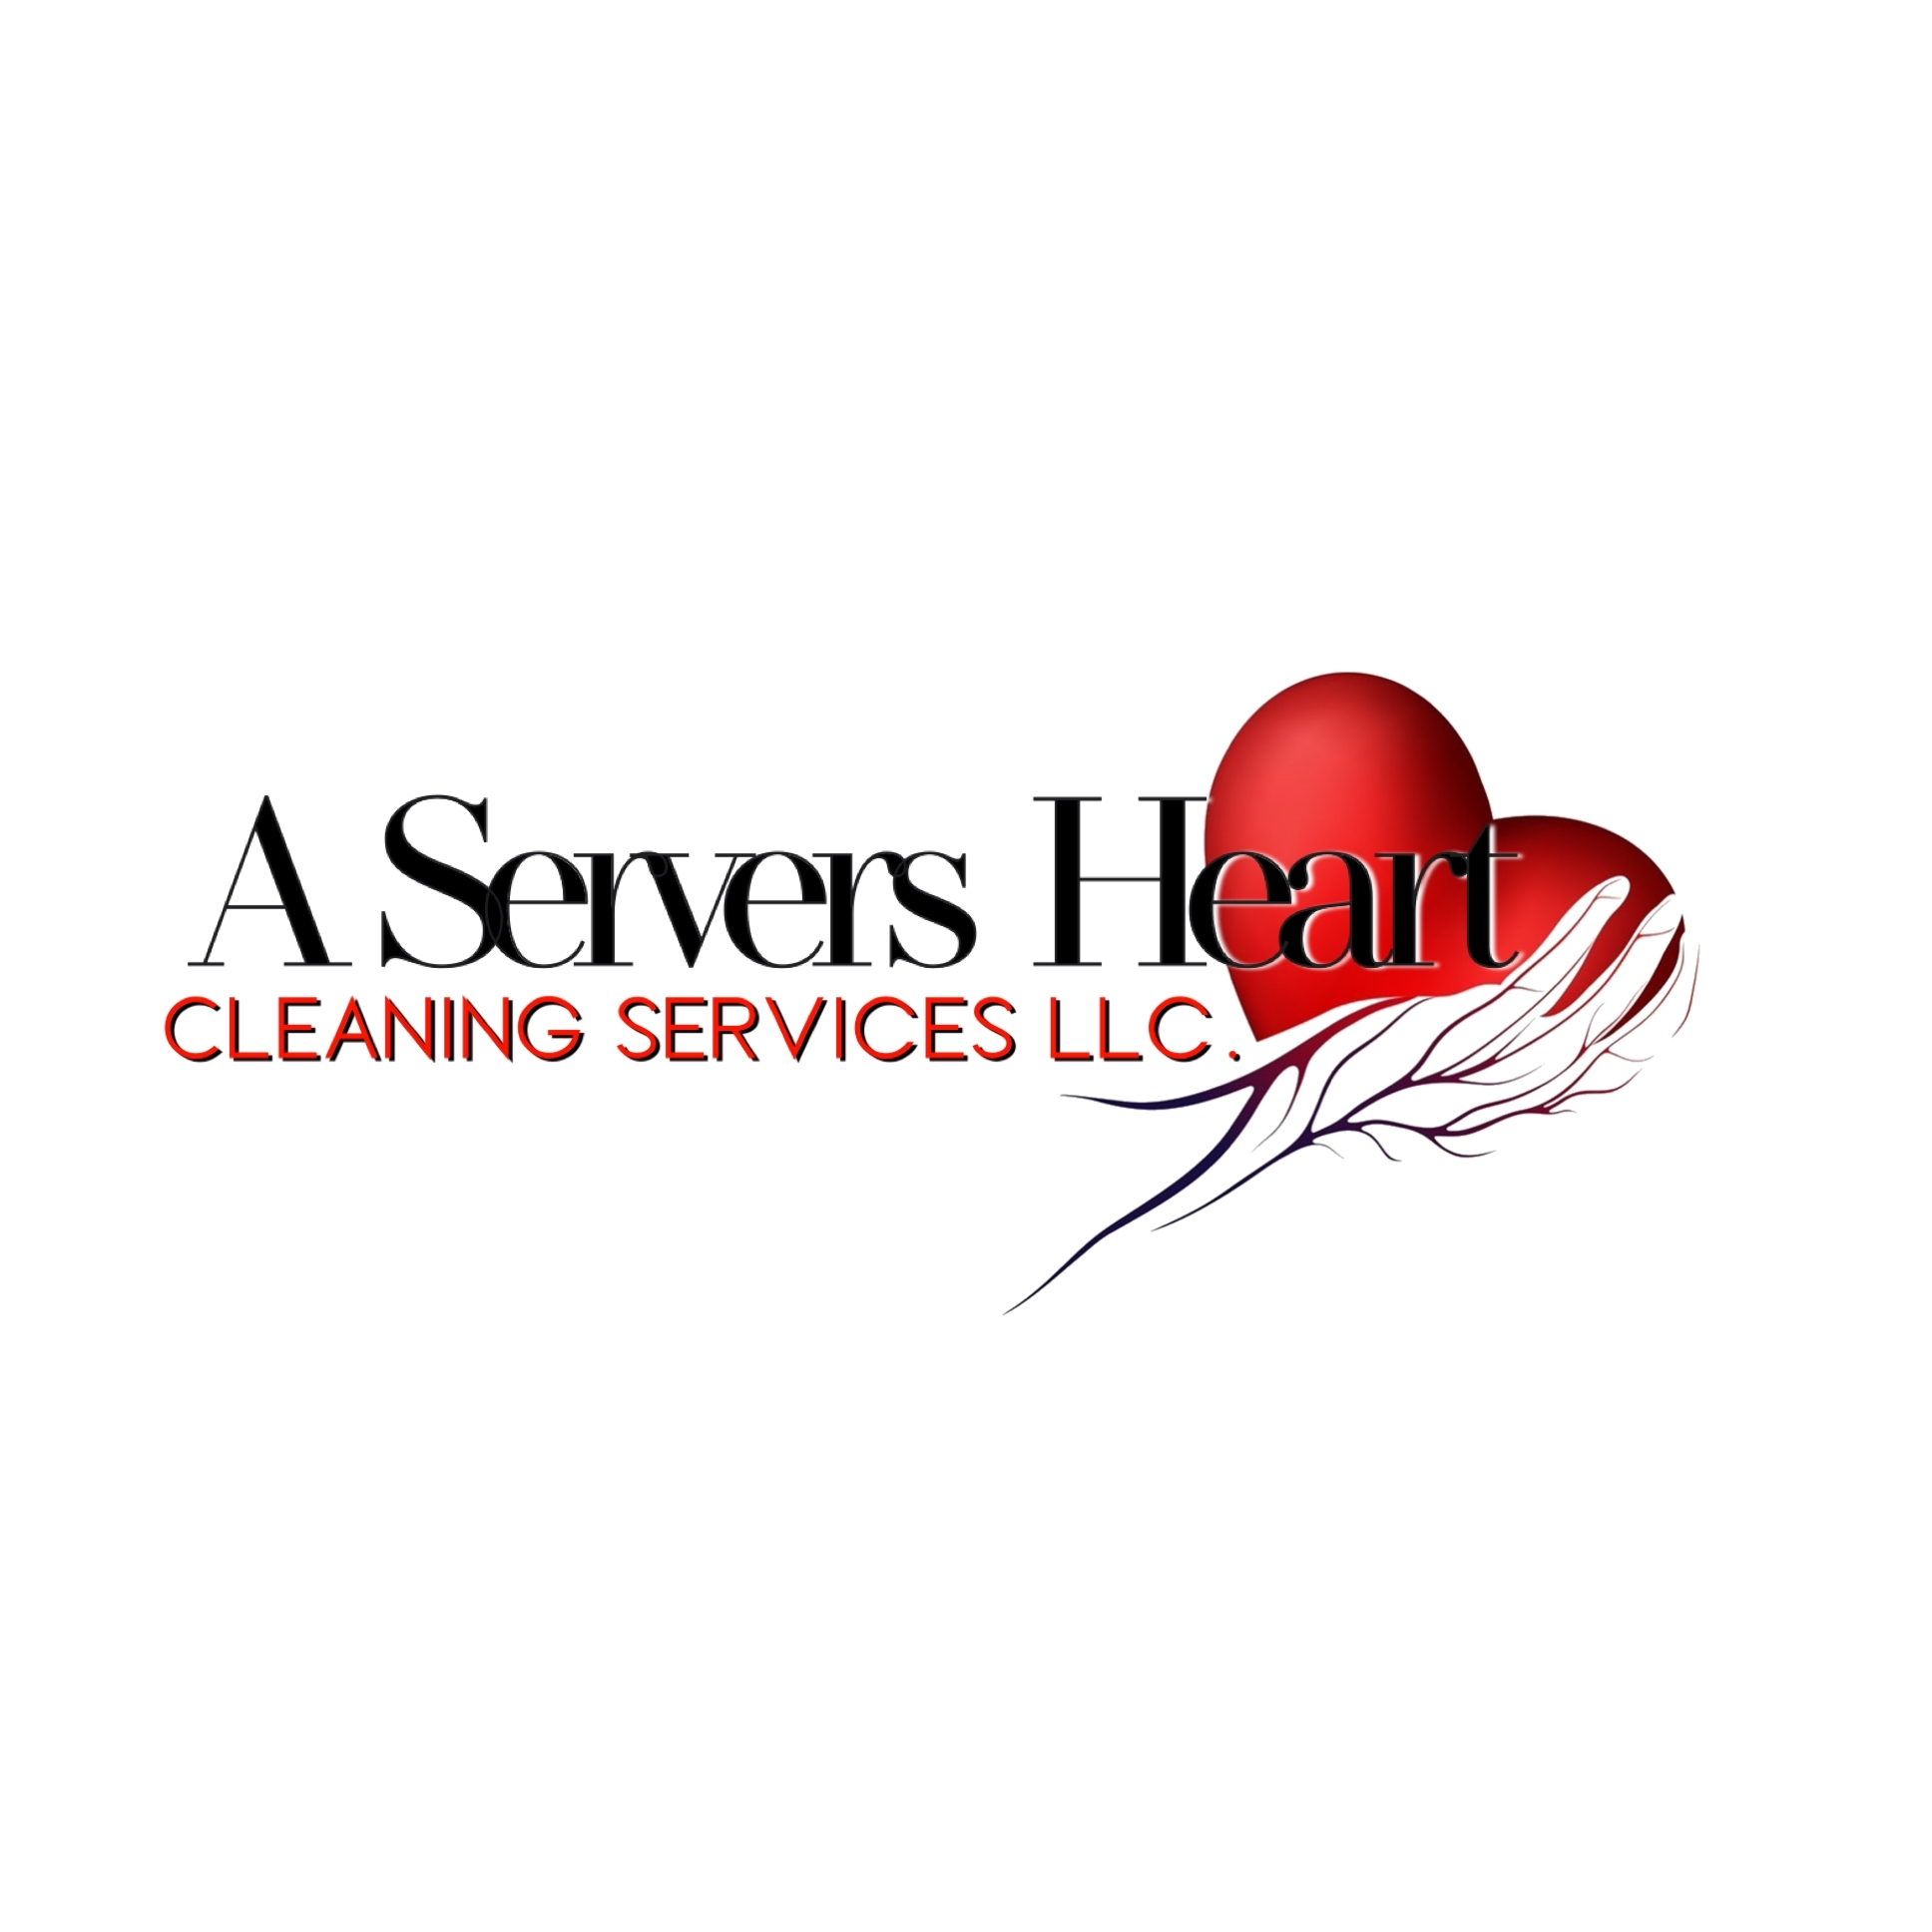 A Servers Heart Cleaning Services LLC